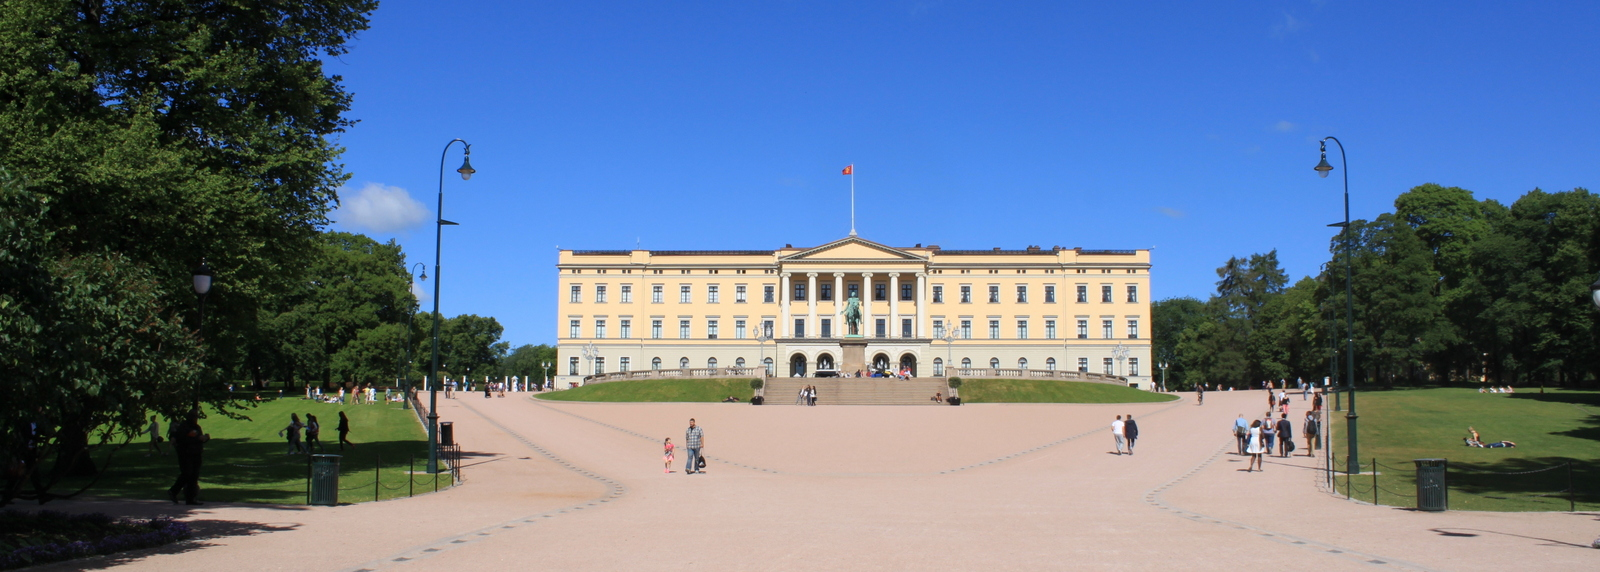 Royal Palace, Oslo, Noorwegen